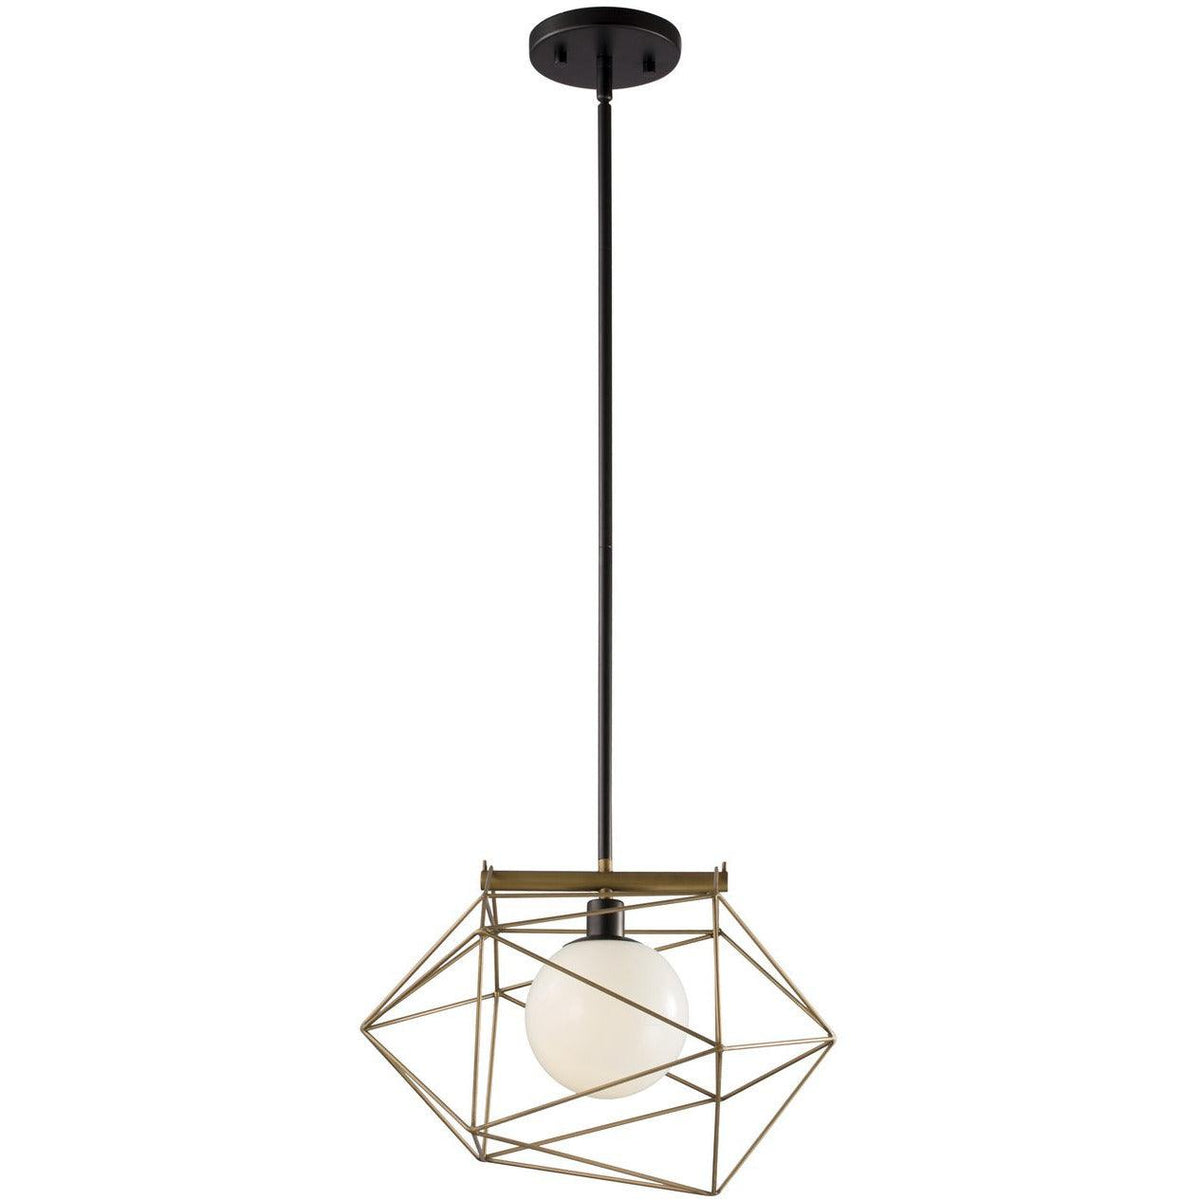 Alora Lighting - PD303201CBRG - Pendants - Necto - Classic Black /Relic Gold